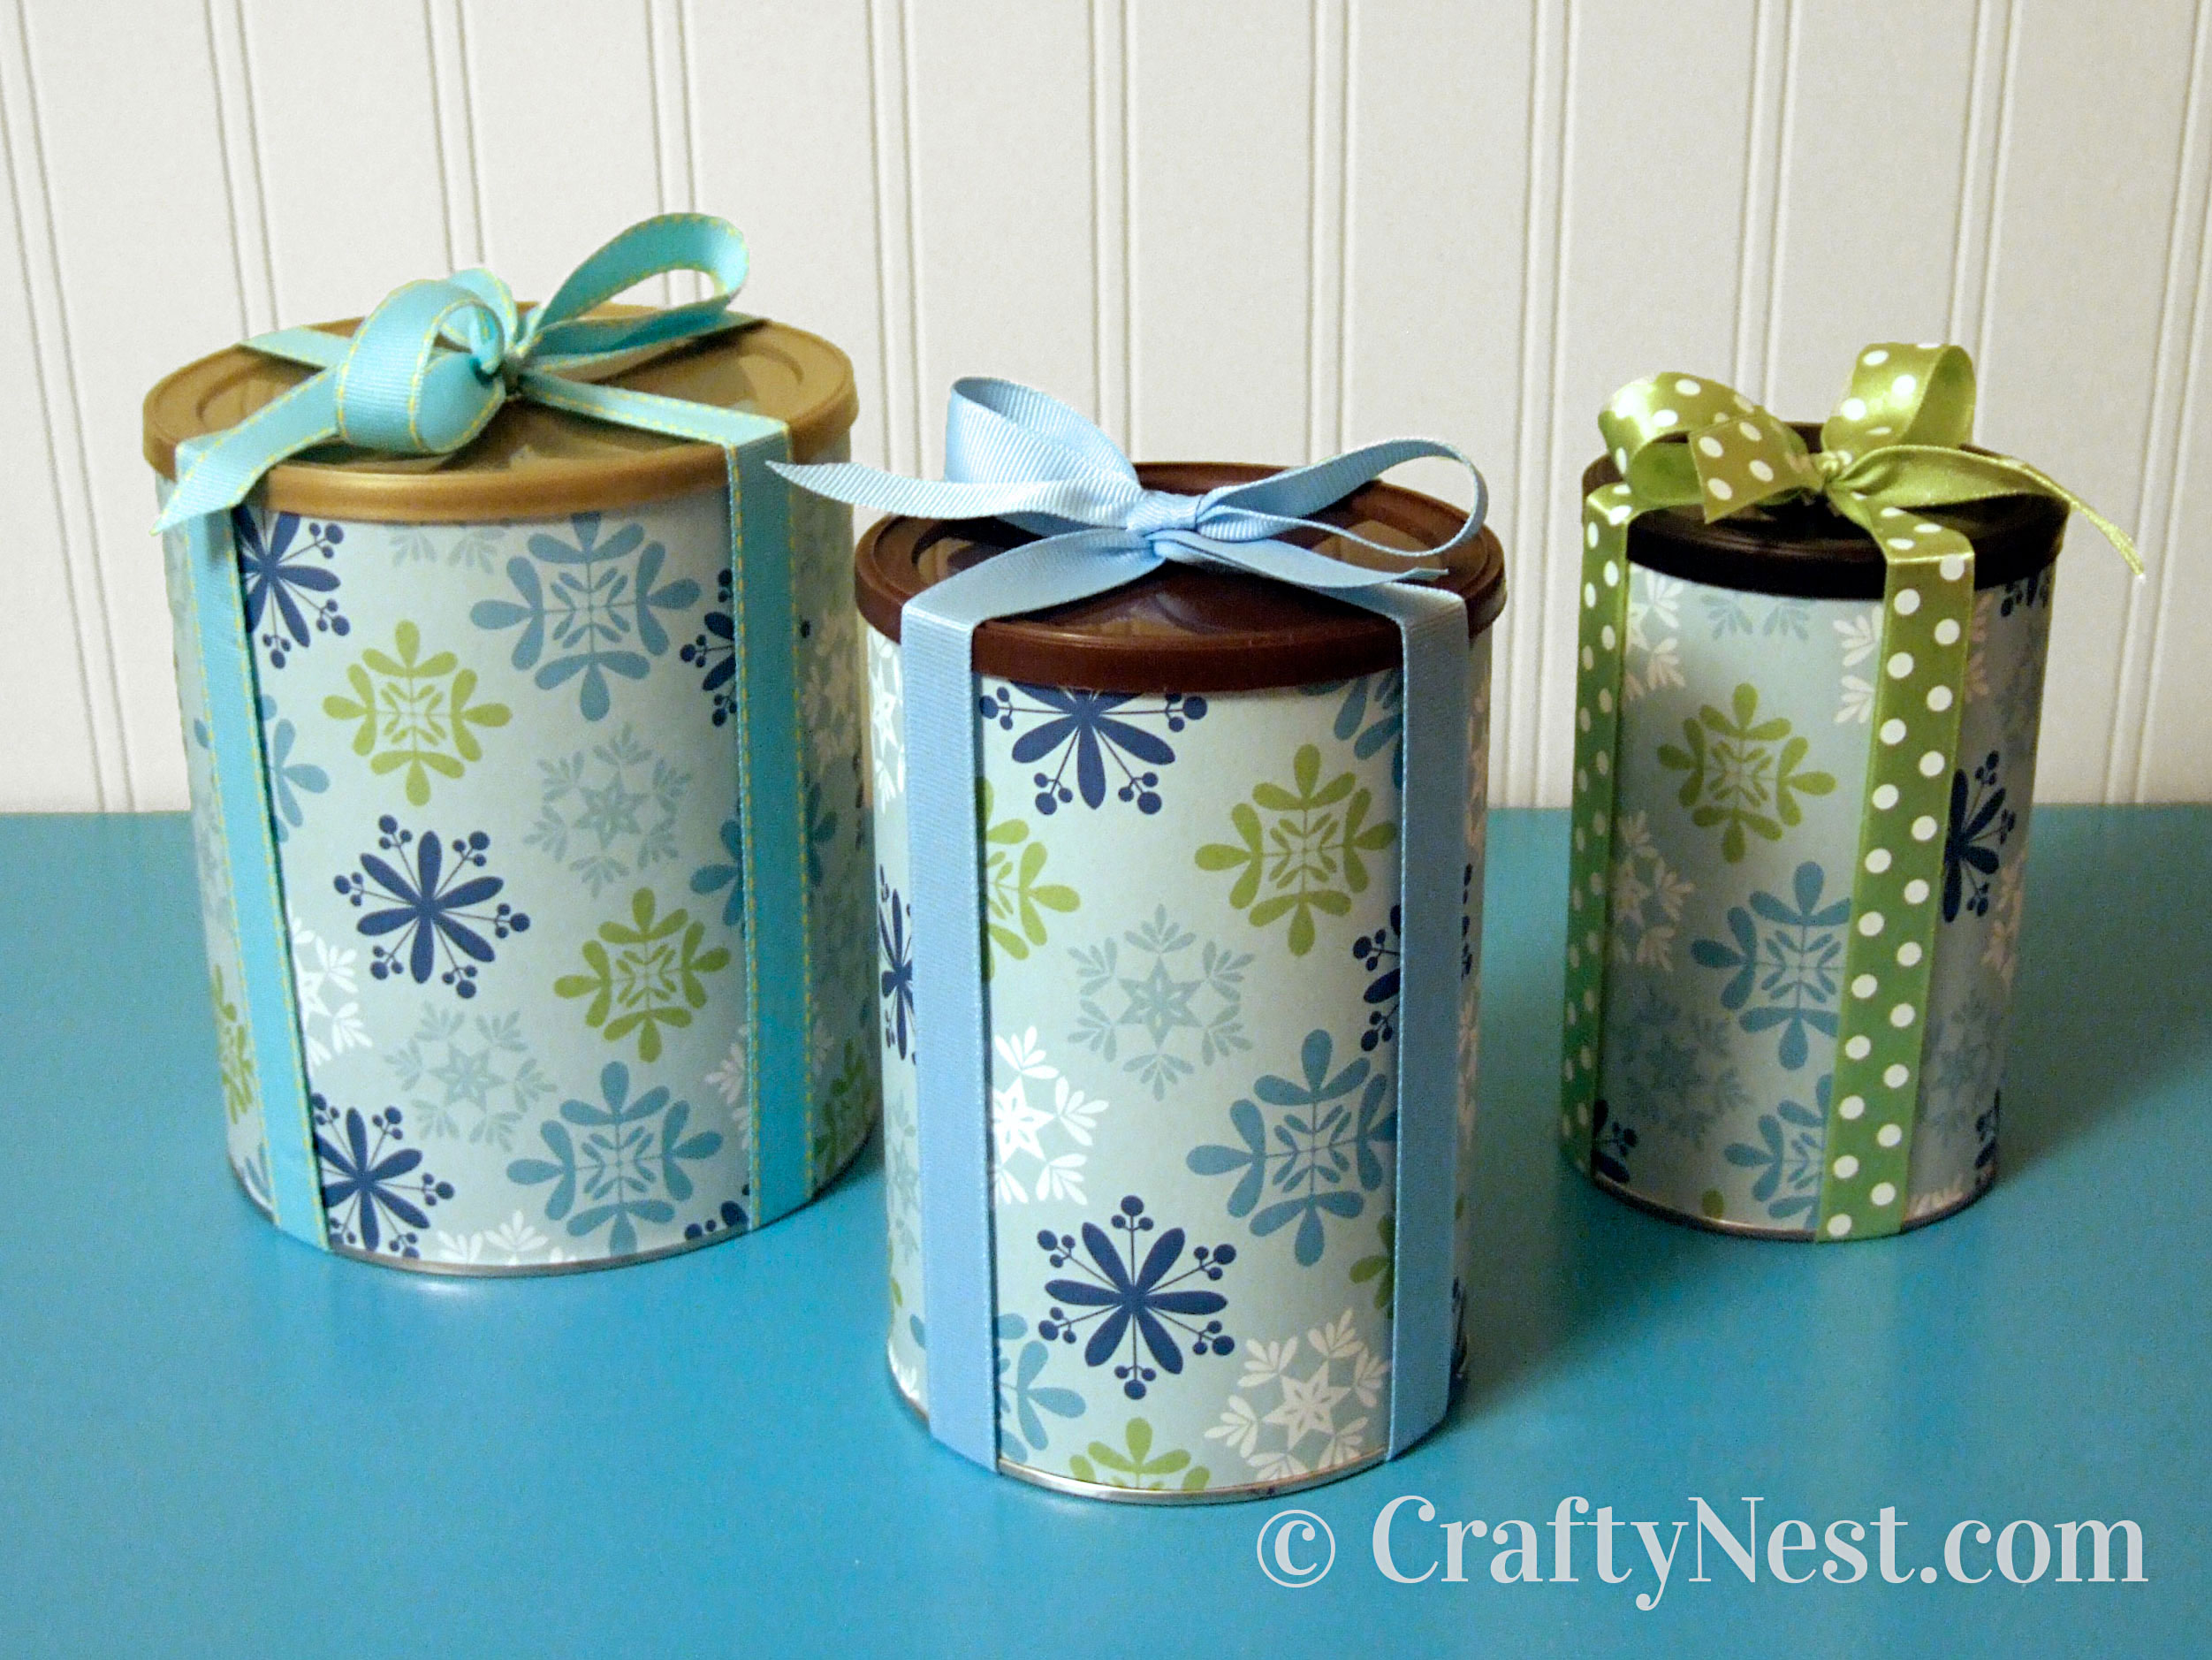 Food canisters wraped as gifts, photo